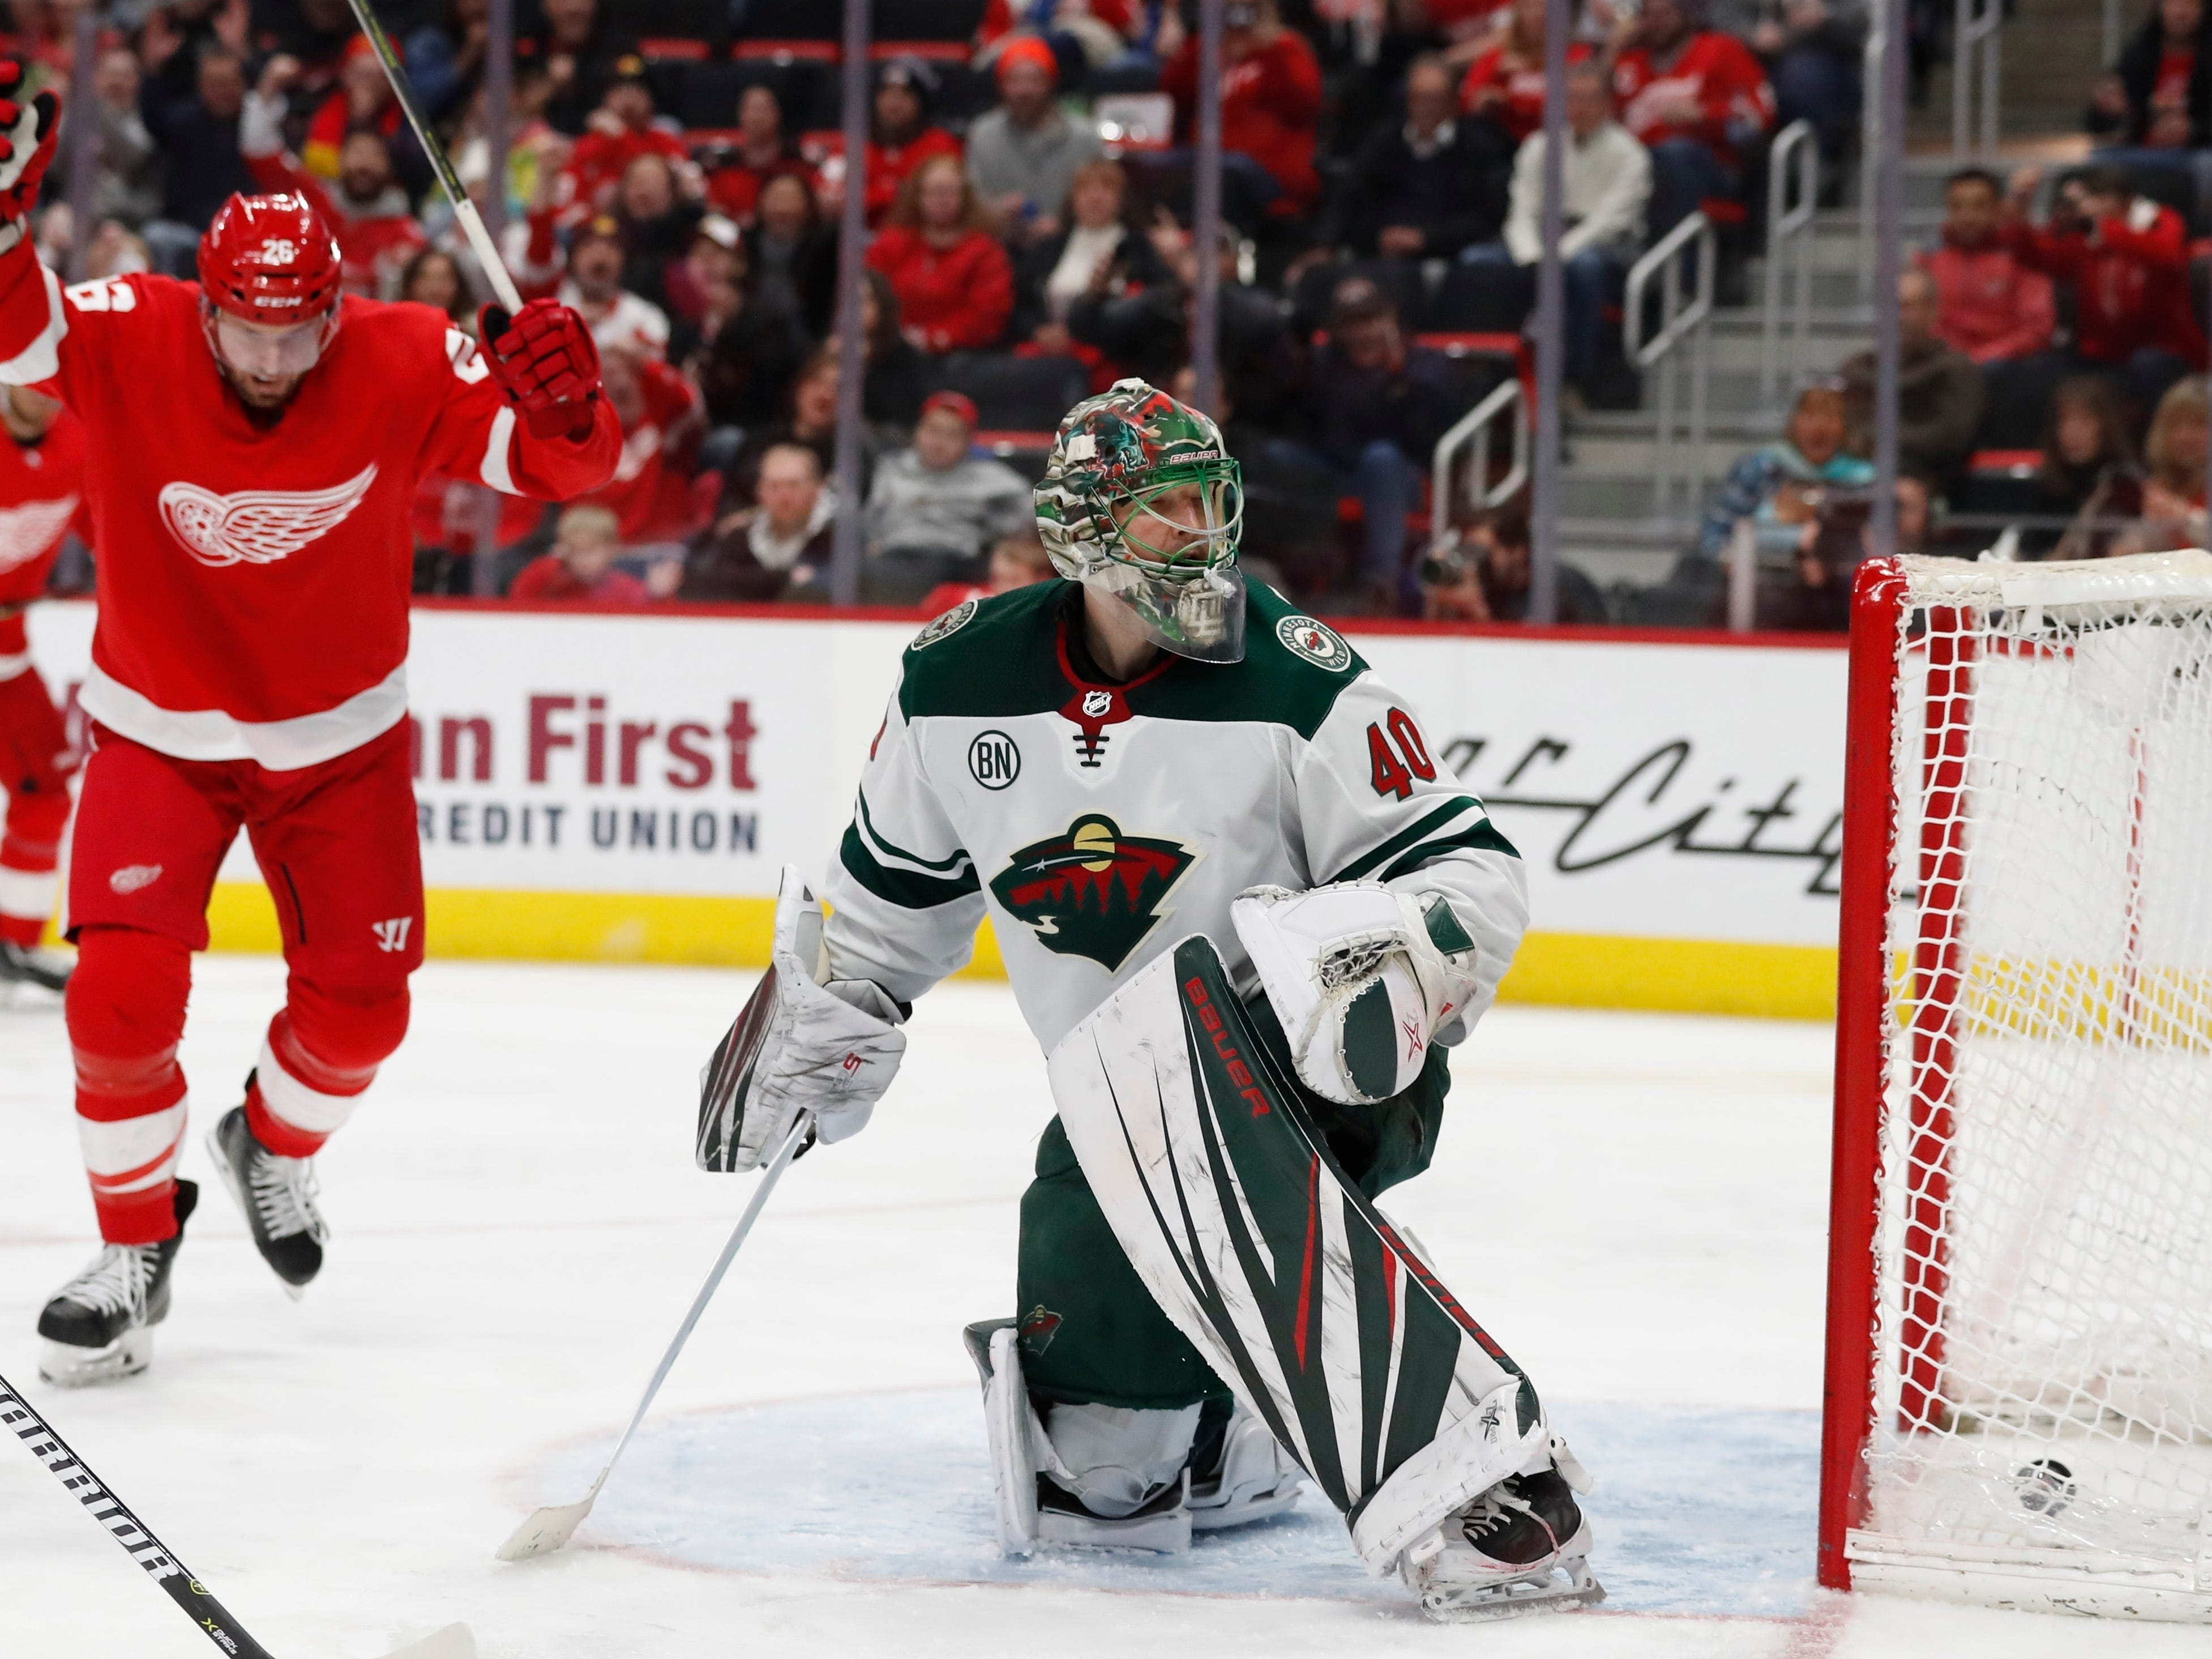 Detroit Red Wings left wing Thomas Vanek, left, reacts as a shot by right wing Anthony Mantha gets past Minnesota Wild goaltender Devan Dubnyk during the third period of an NHL hockey game Friday, Feb. 22, 2019, in Detroit.